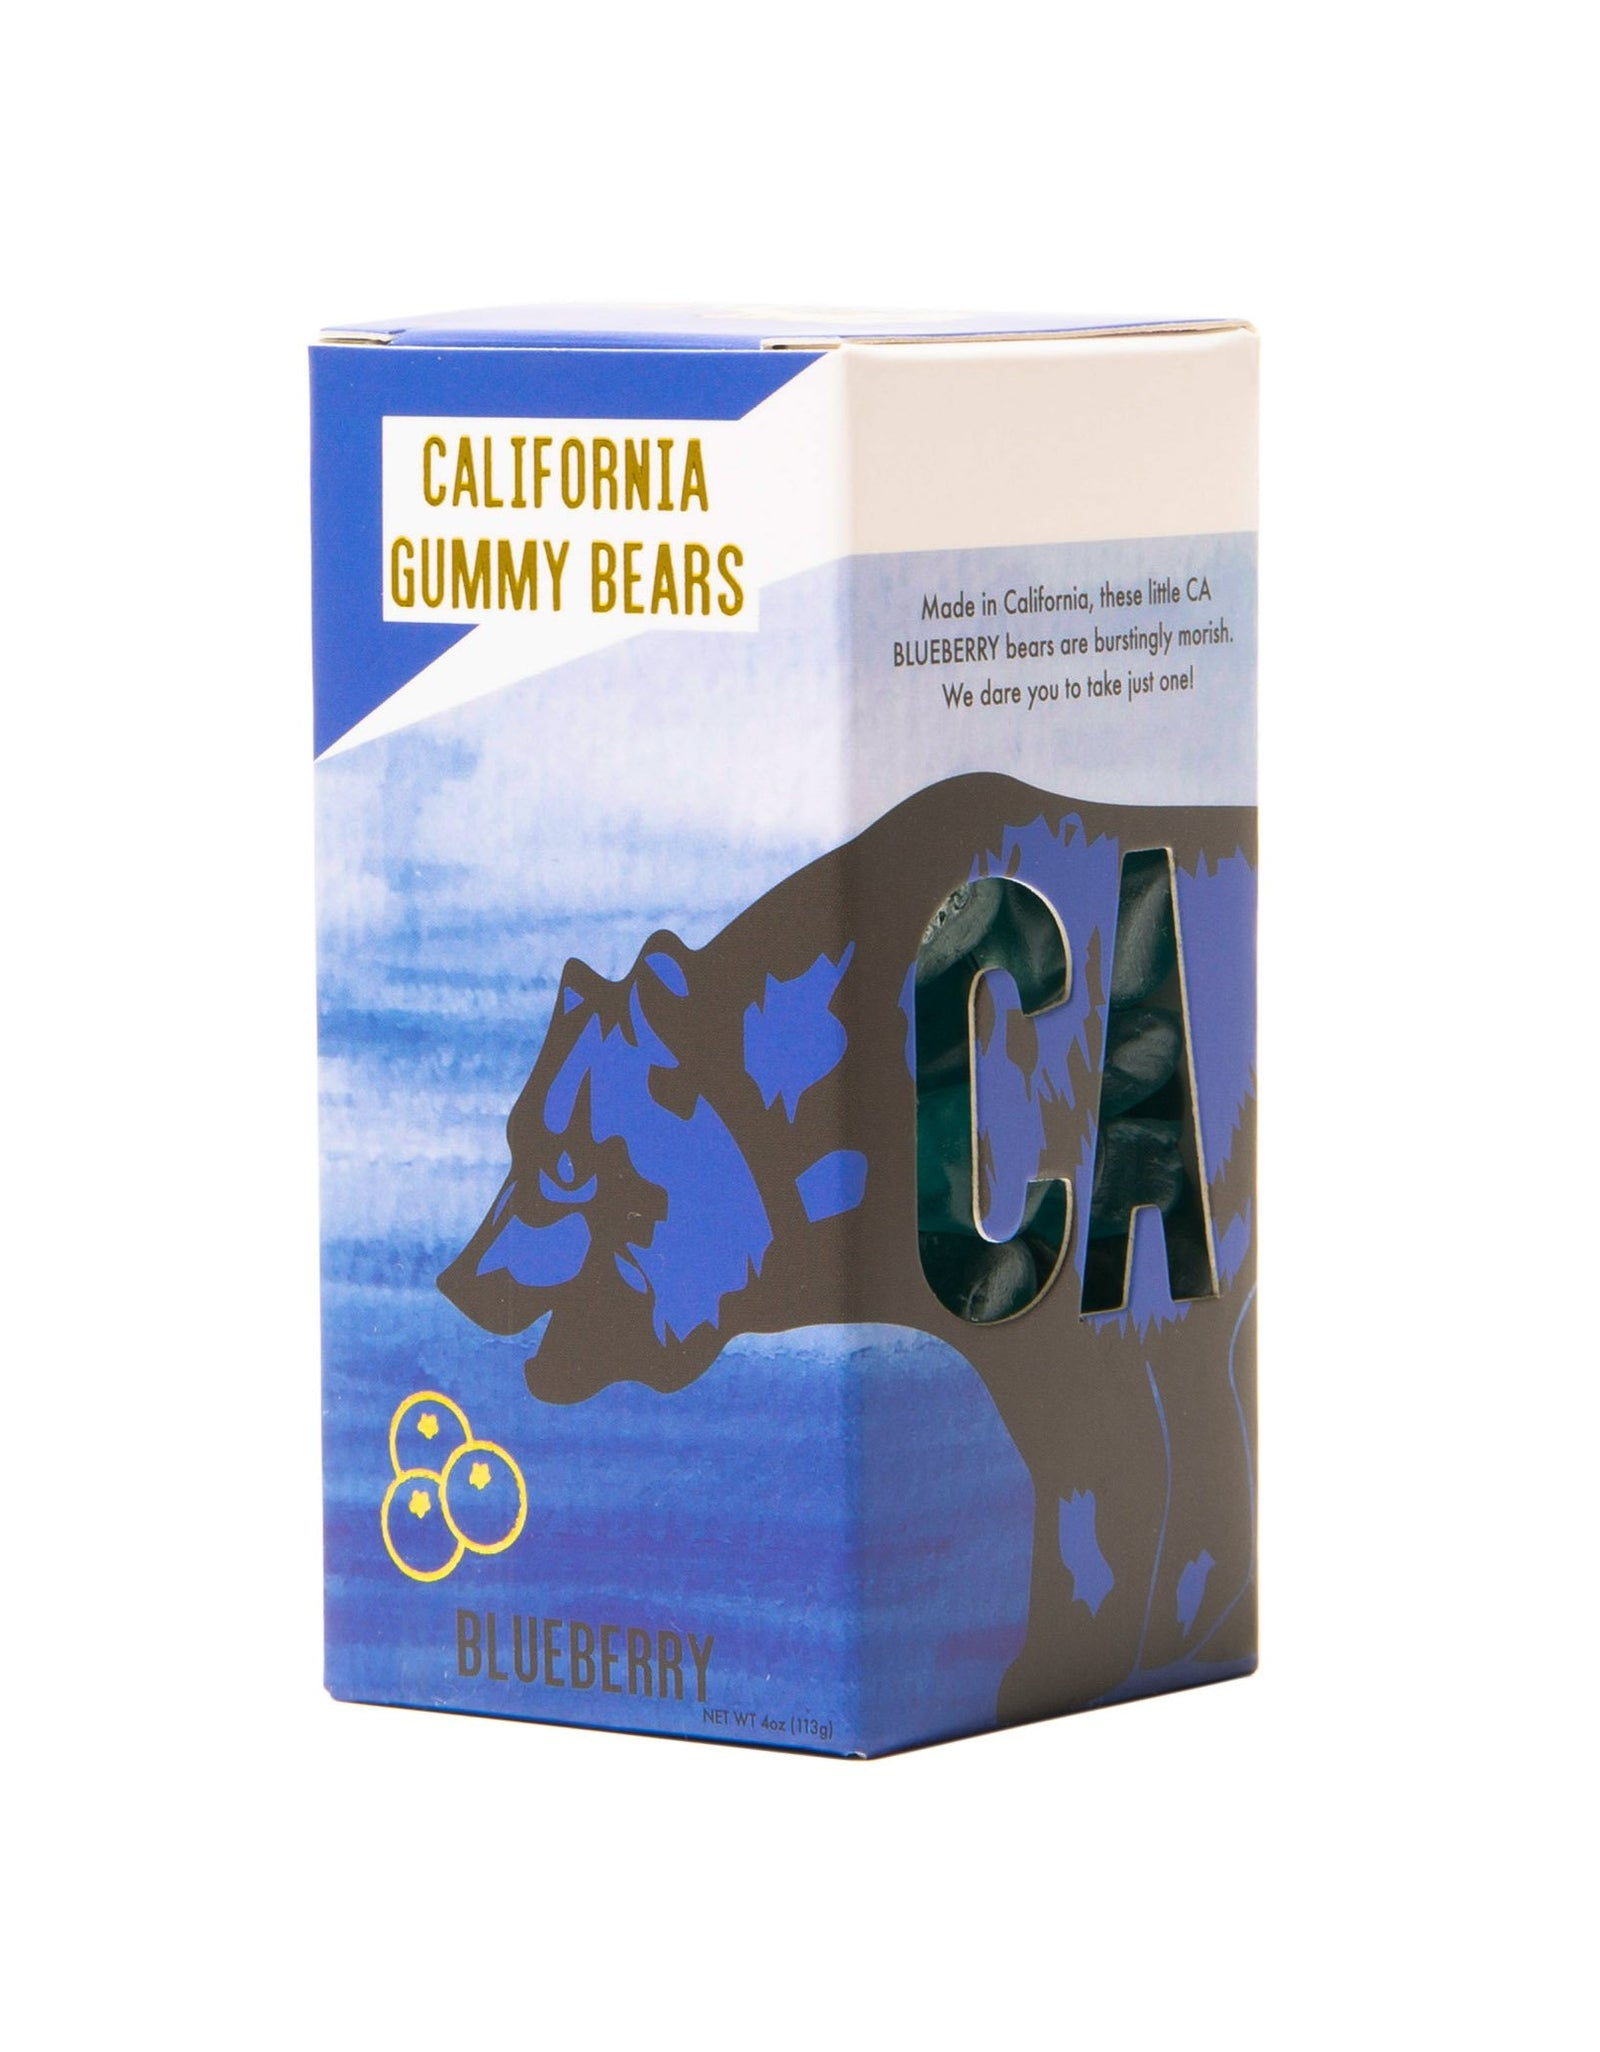 www.cagummybears.com BLUEBERRY